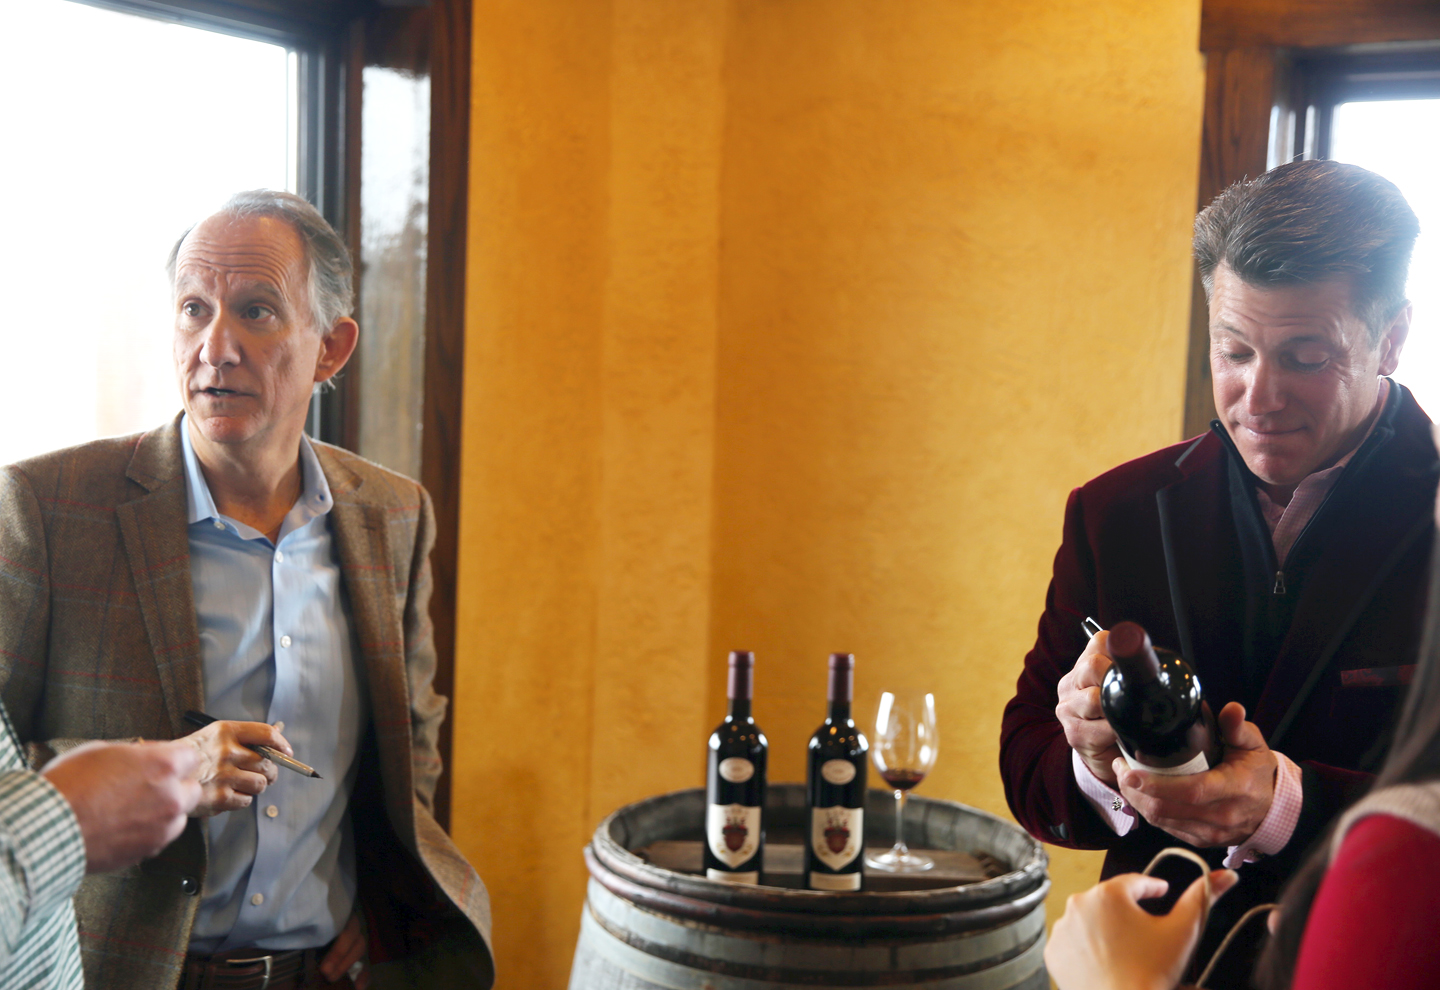 Jay Raffaldini (left) and JW Ray (right) sign bottles of their collaboration wine, Sisboombah.